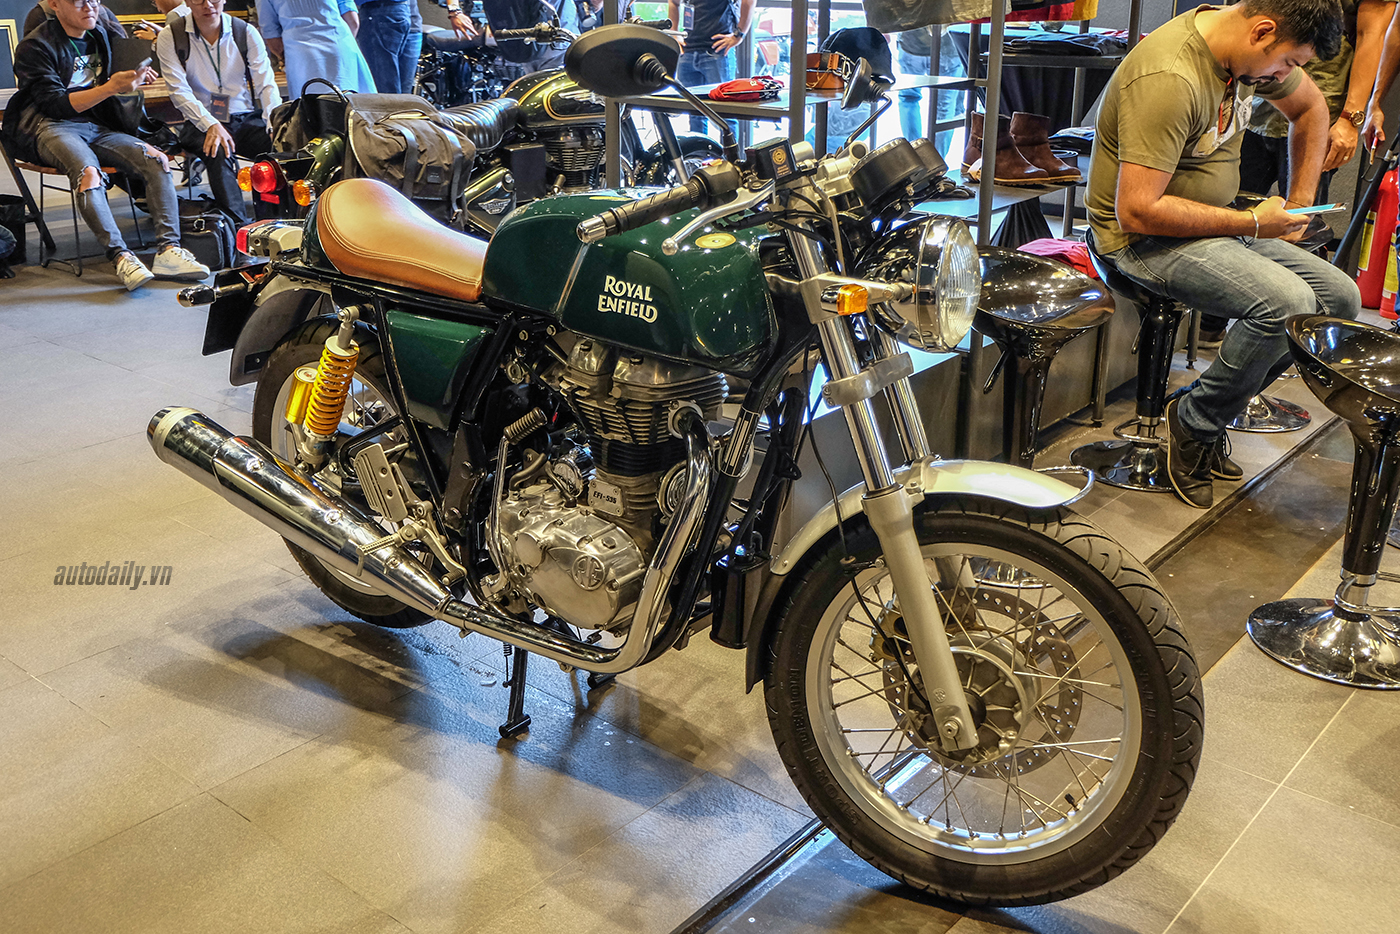 royal-enfield-continental-gt-26.jpg